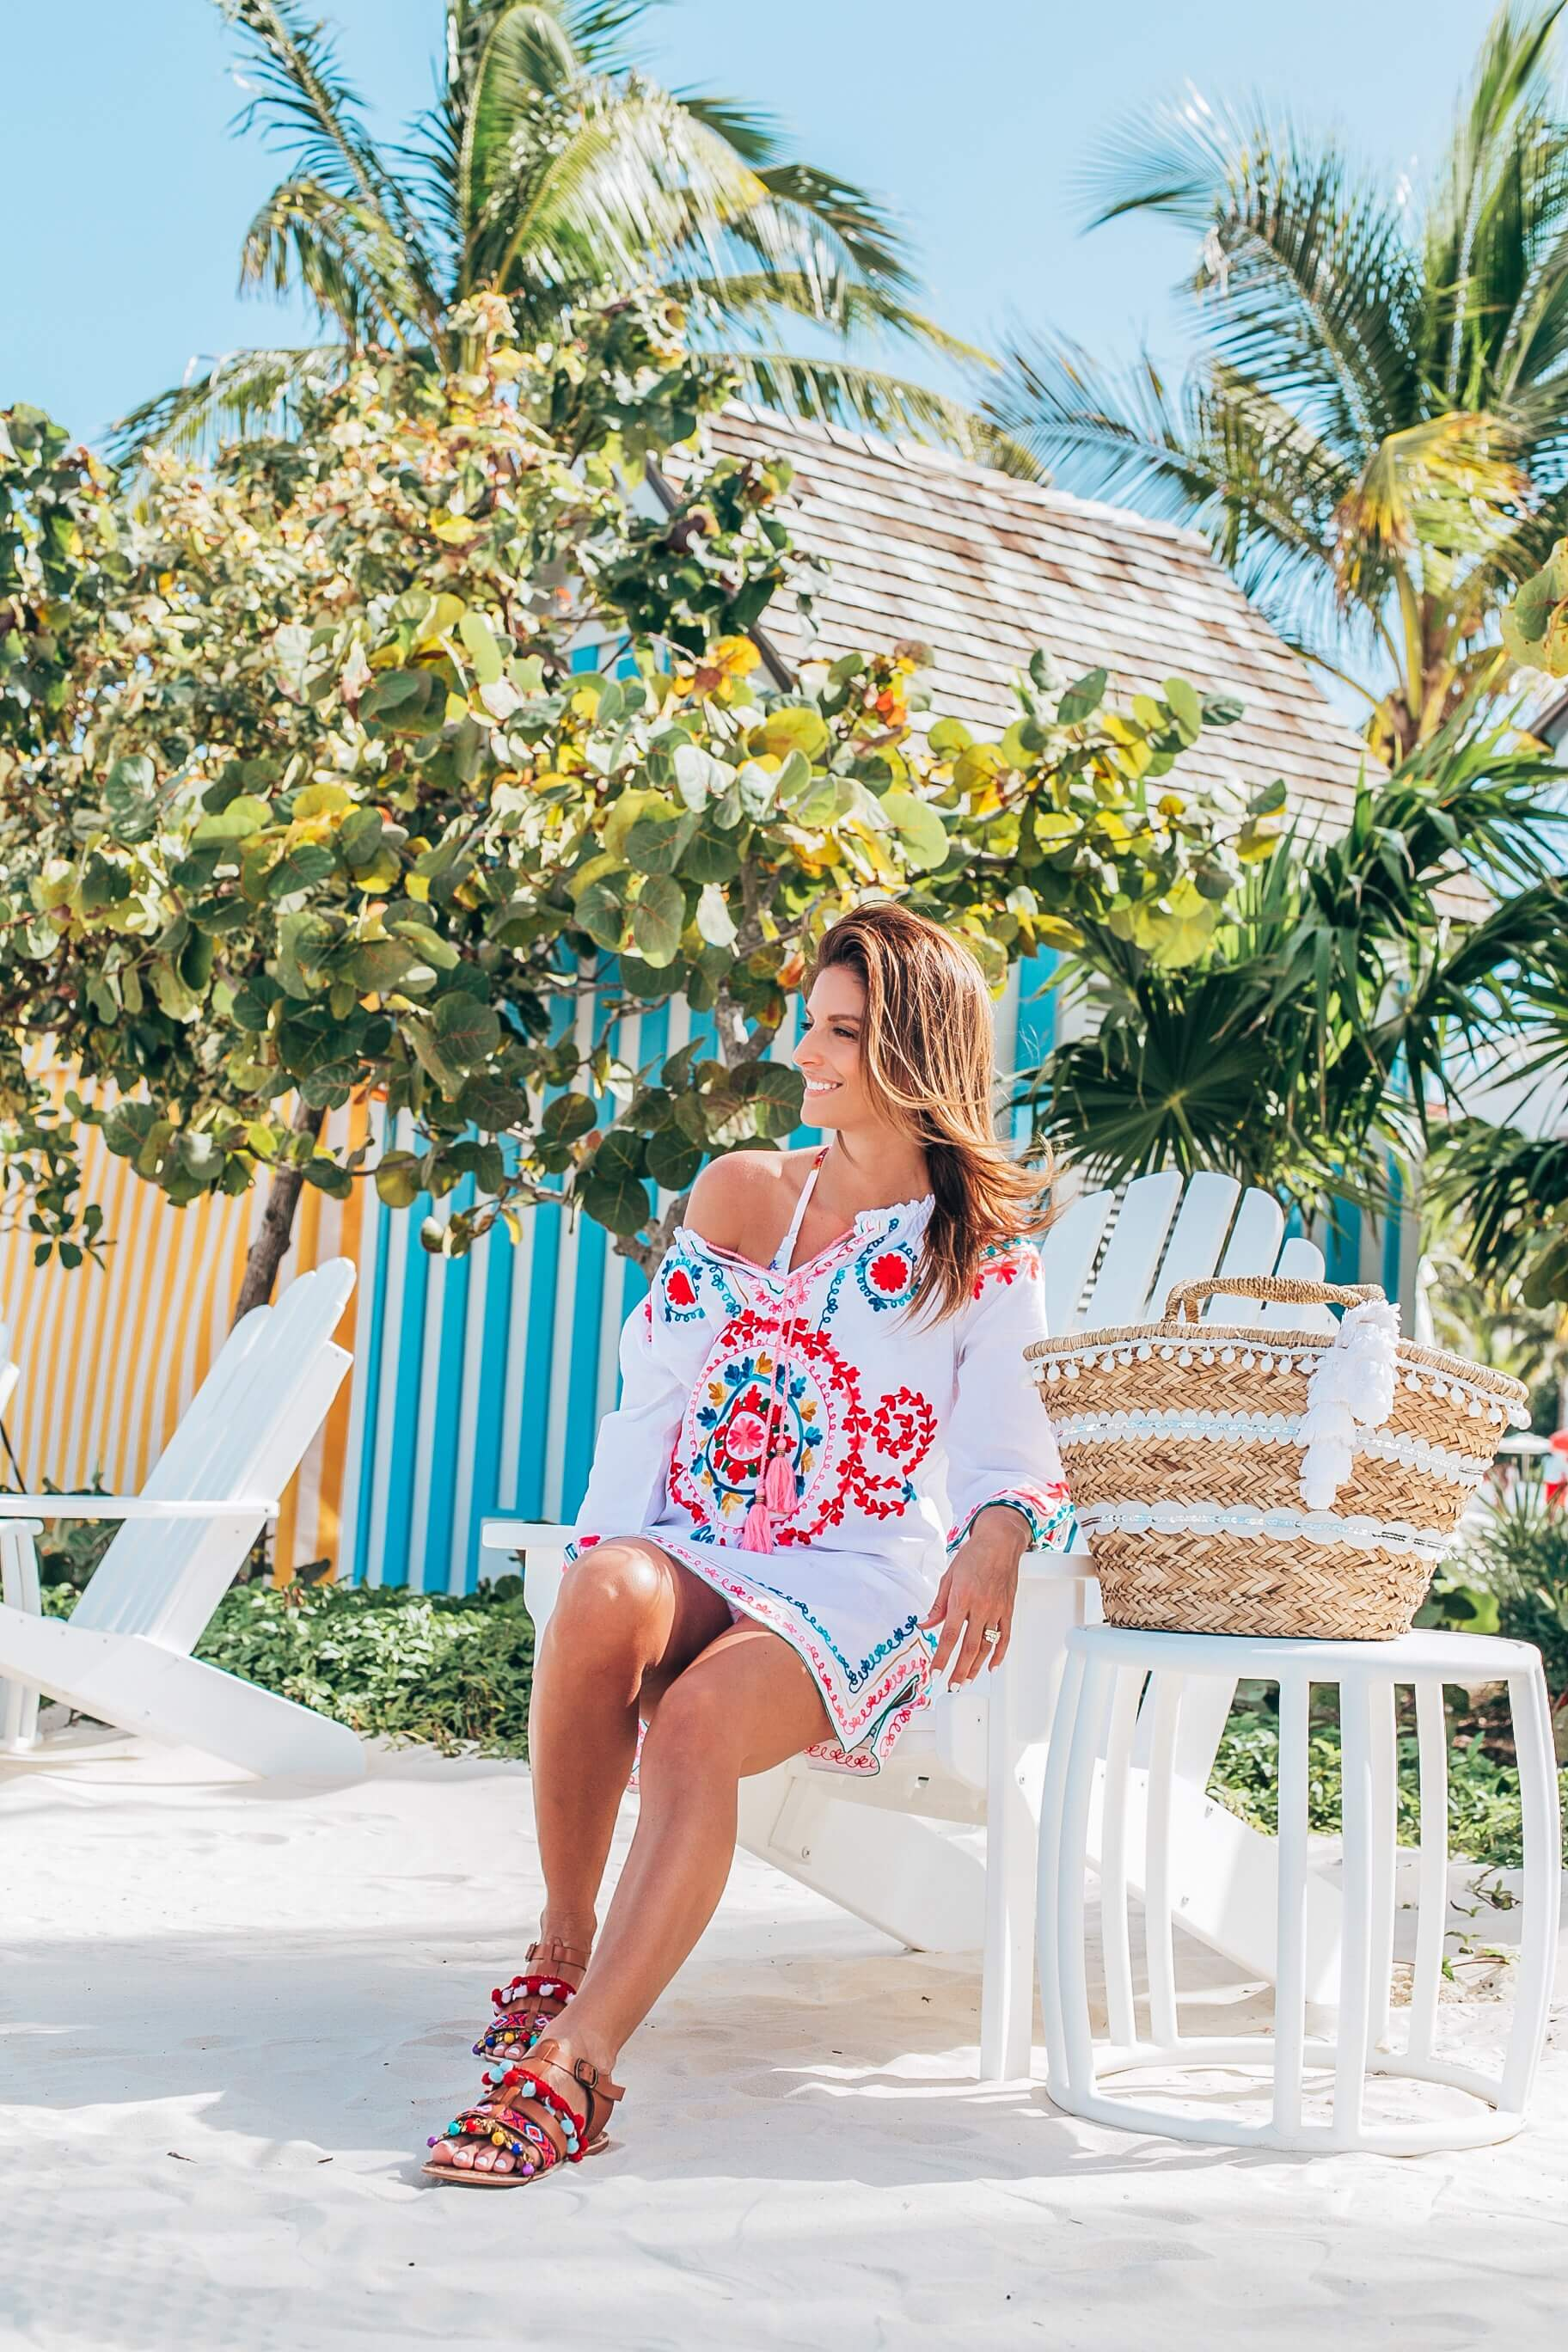 Colourful beach coverup, pom pom sandals, straw bag with pom poms, baha mar resort, Mandy Furnis sparkleshinylove Durham Region blogger